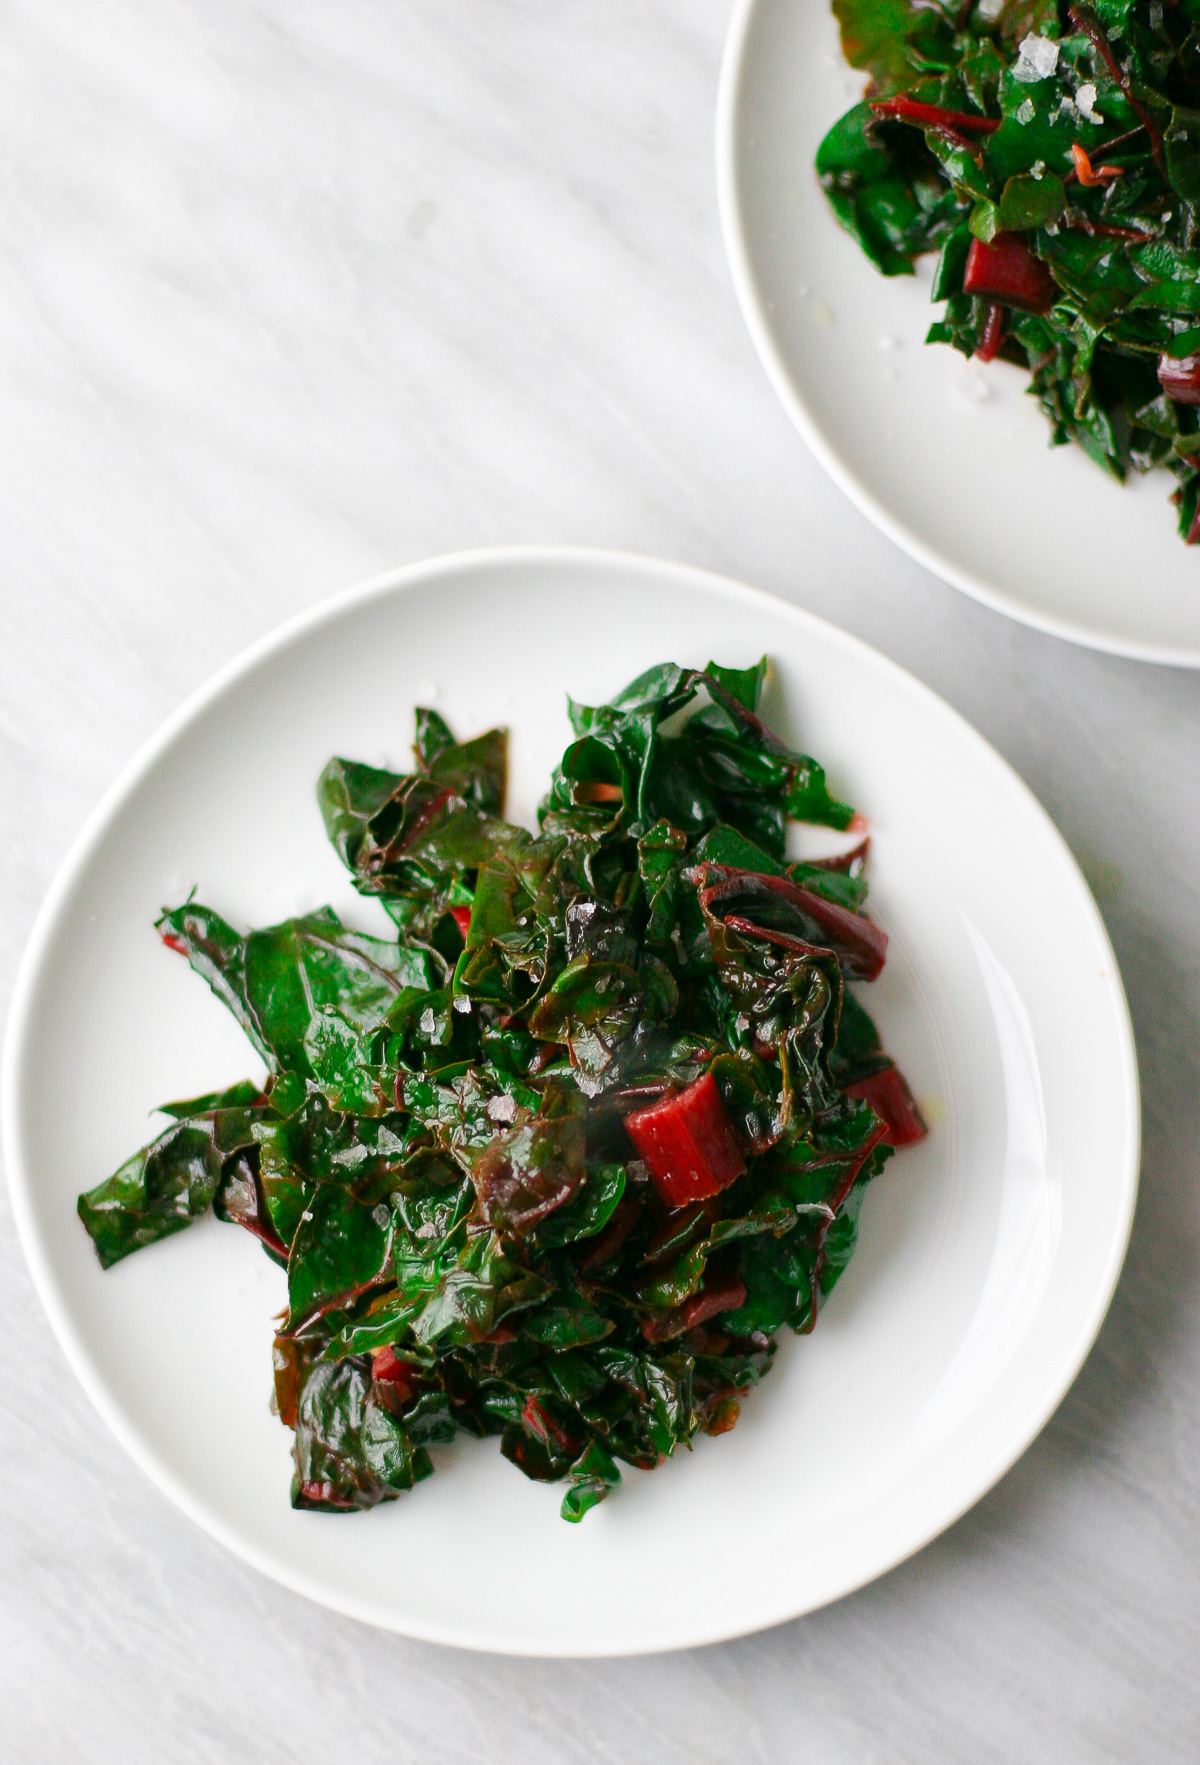 Sautéed Swiss Chard with Garlic and Lemon - Erica Julson